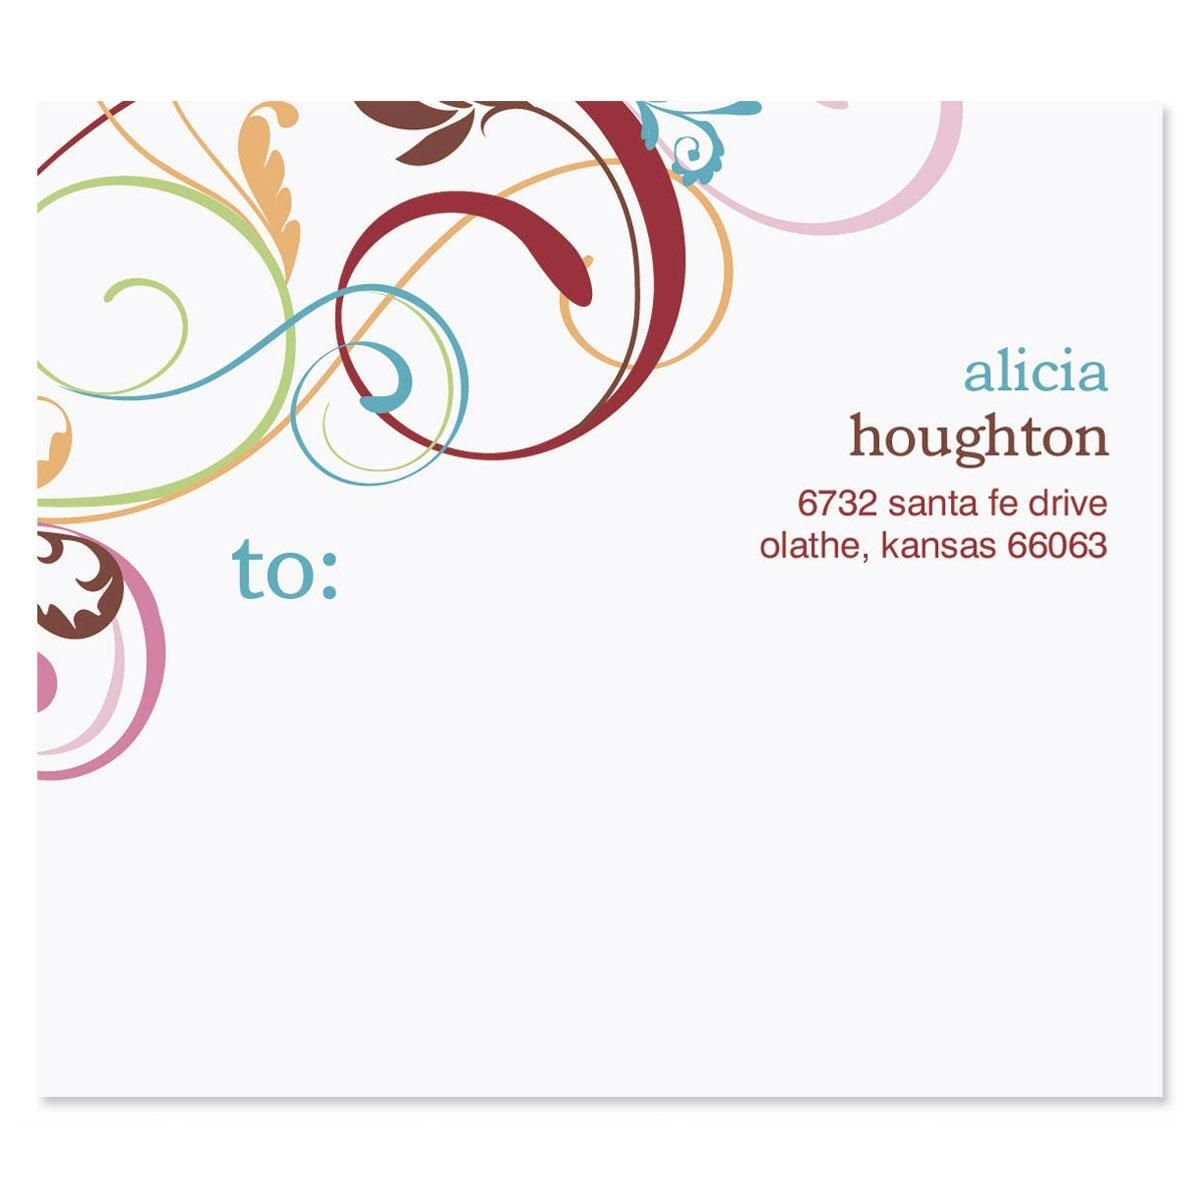 Fantasia Mailing Package Label